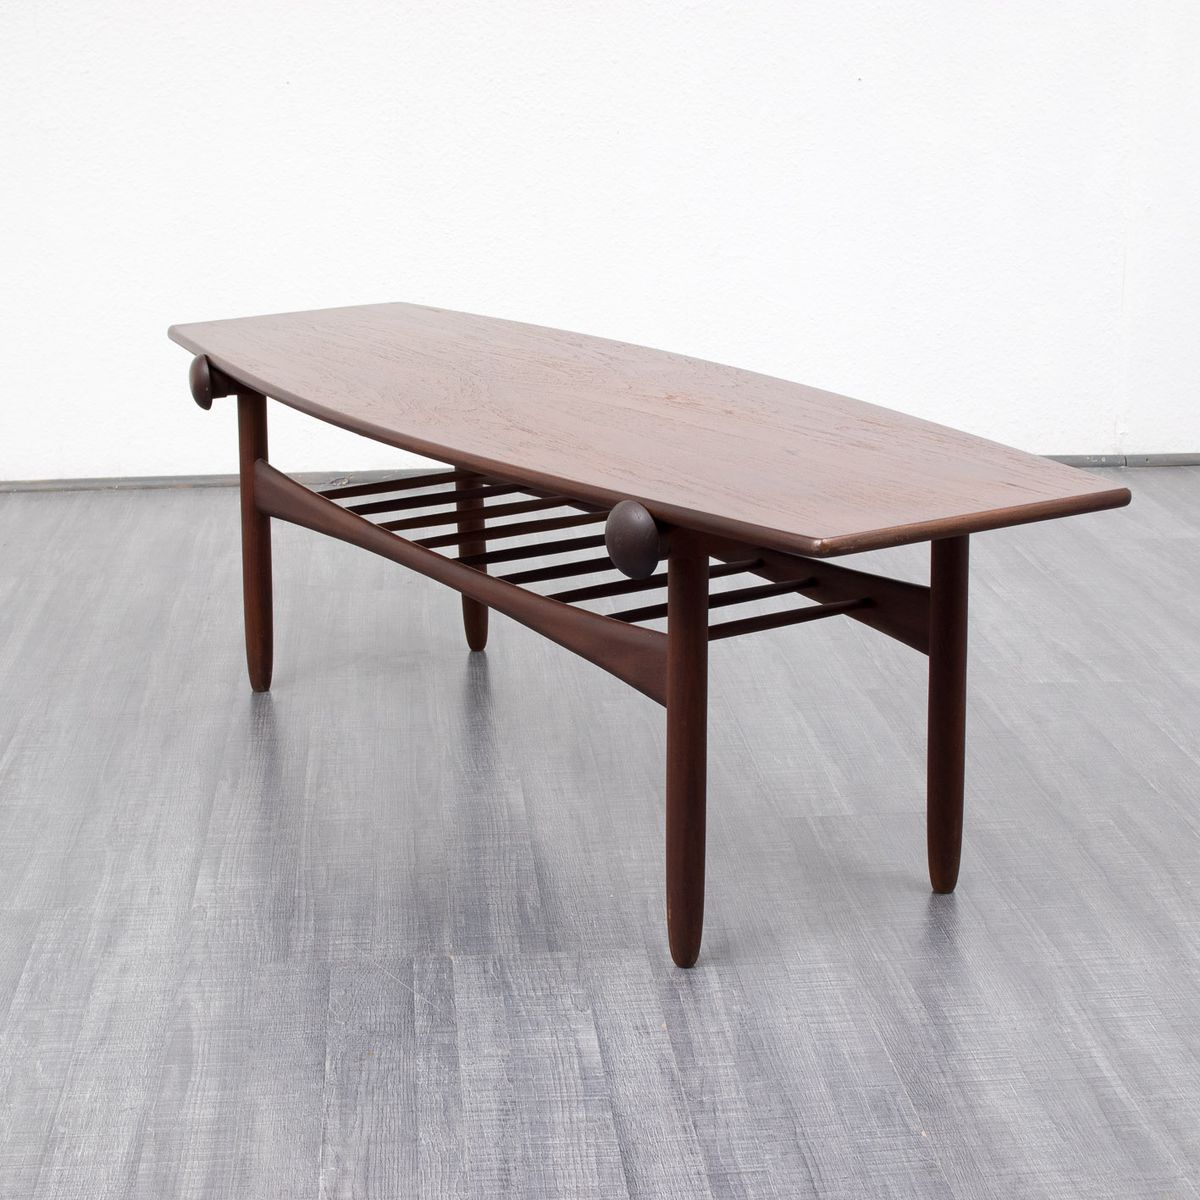 Scandinavian Teak Coffee Table: Scandinavian Style Teak Coffee Table, 1960s For Sale At Pamono